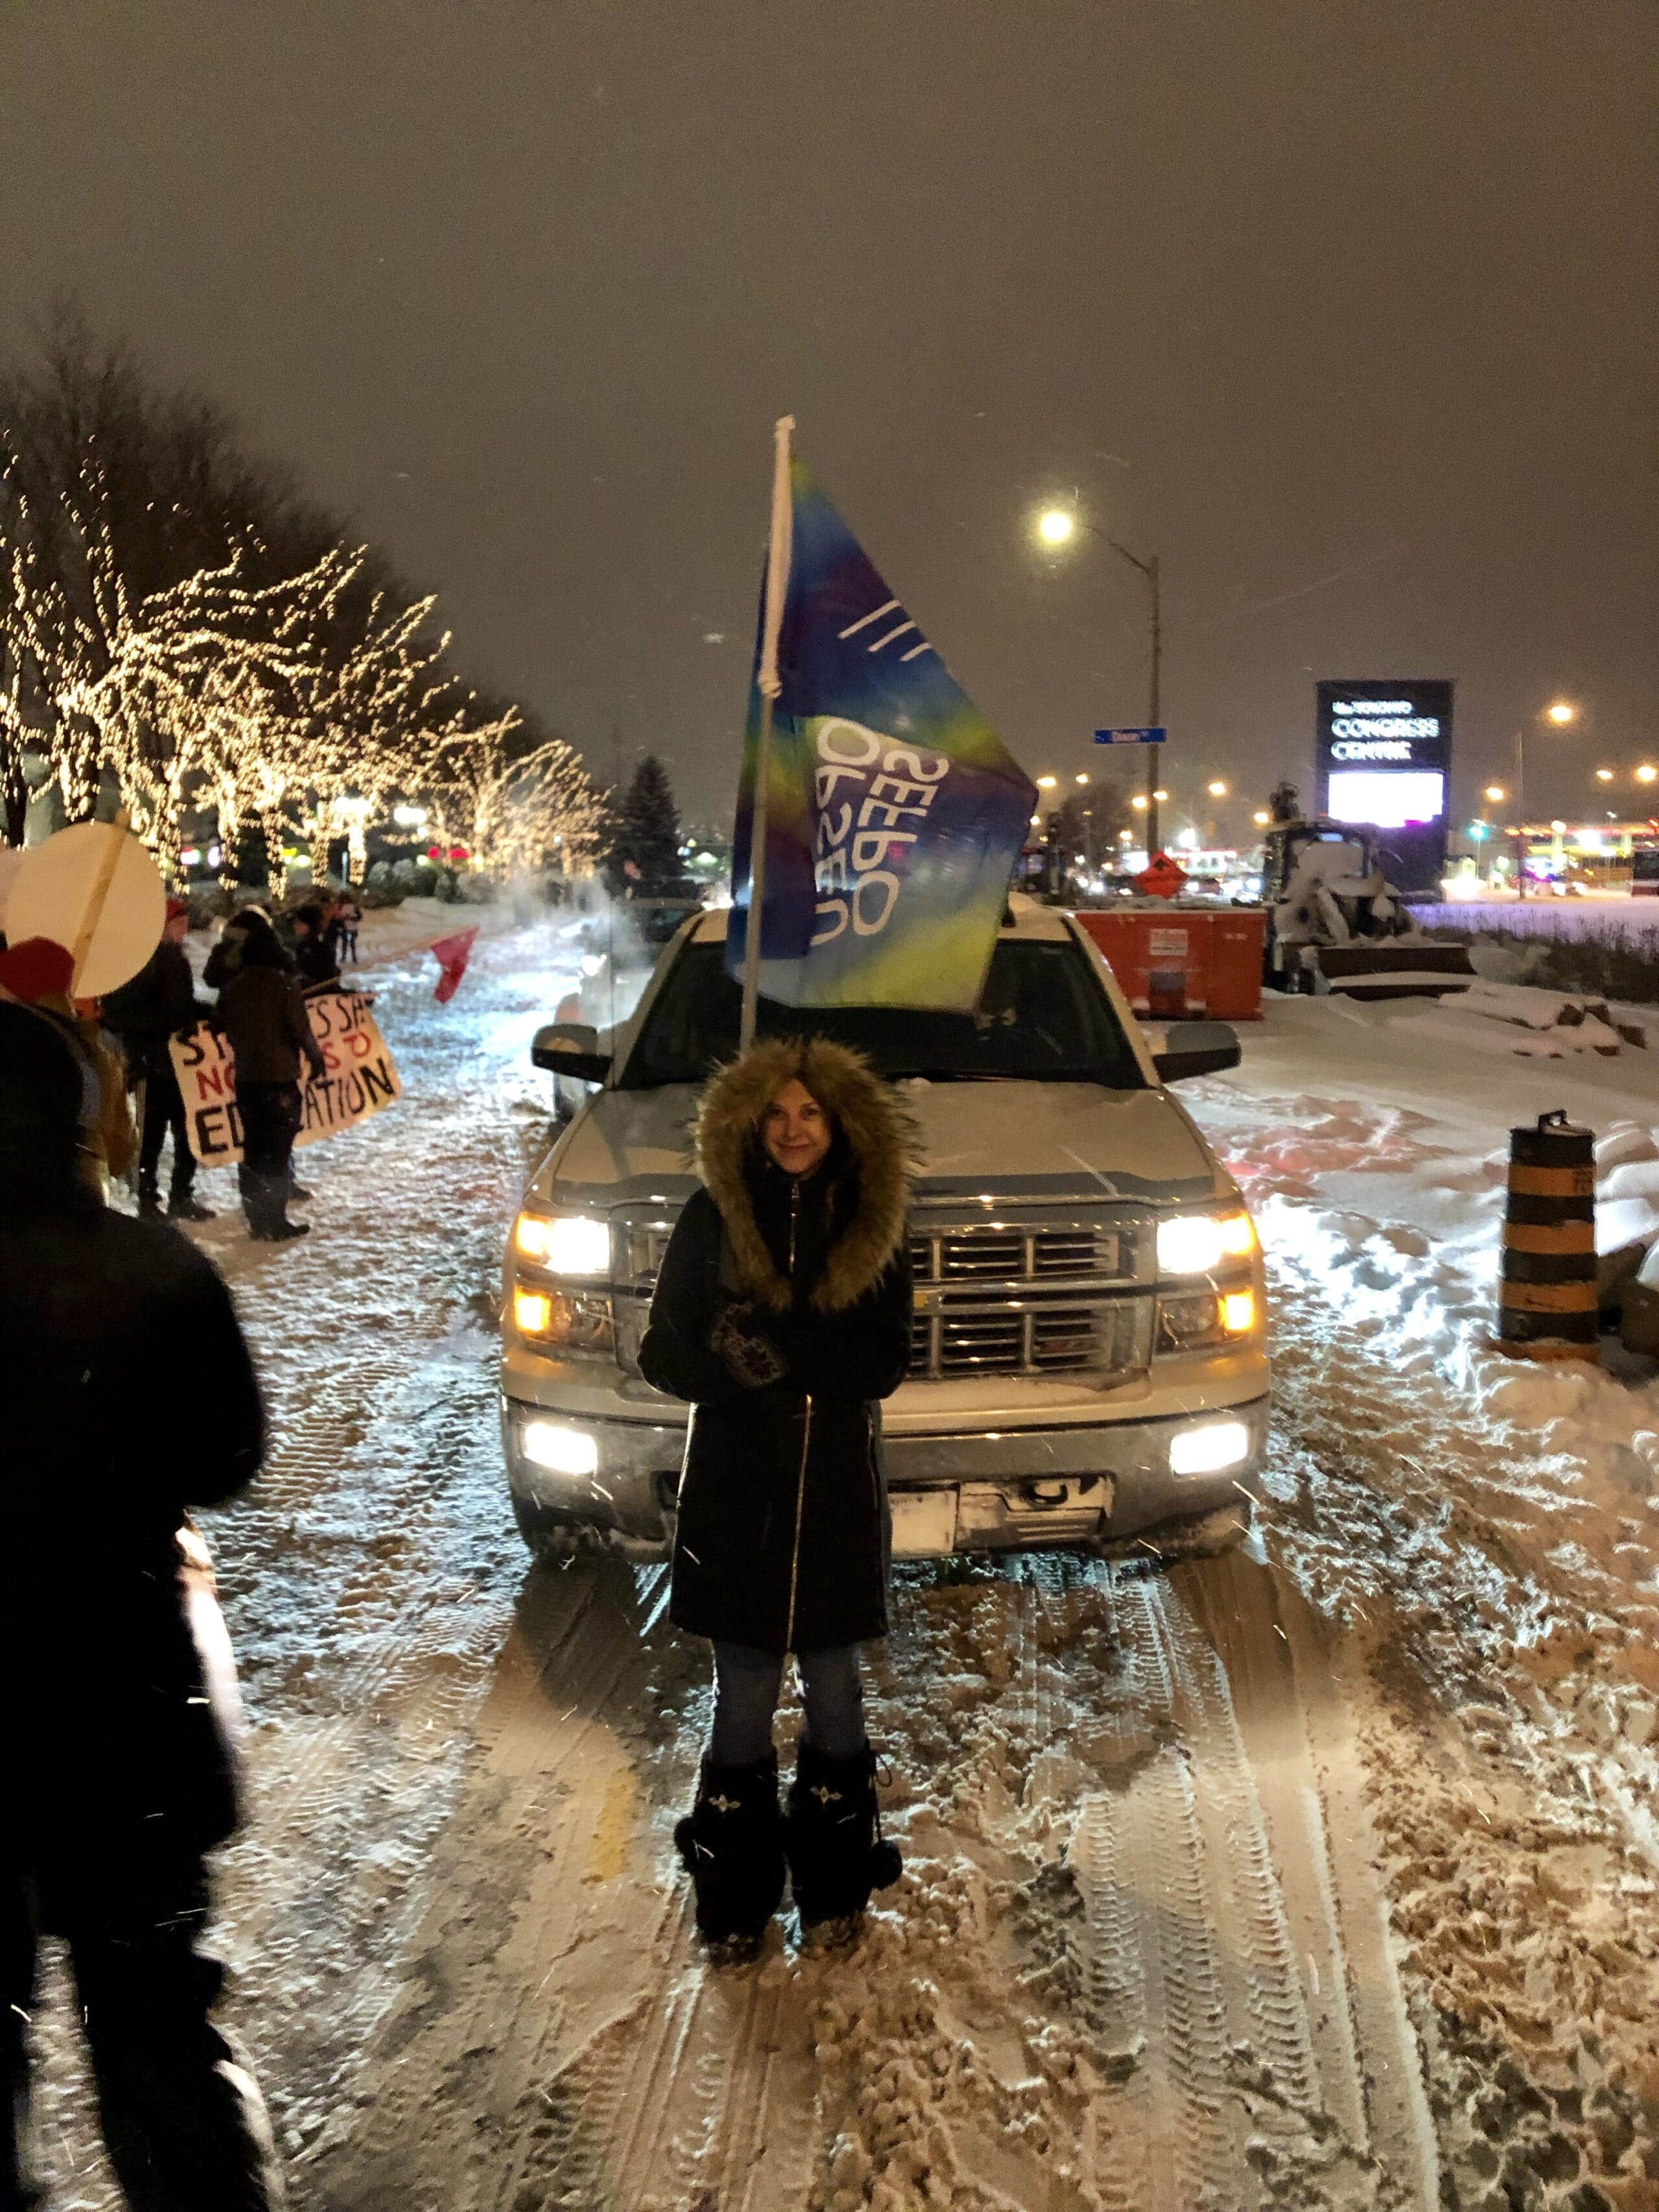 ford_fundraiser_protest_9.jpeg